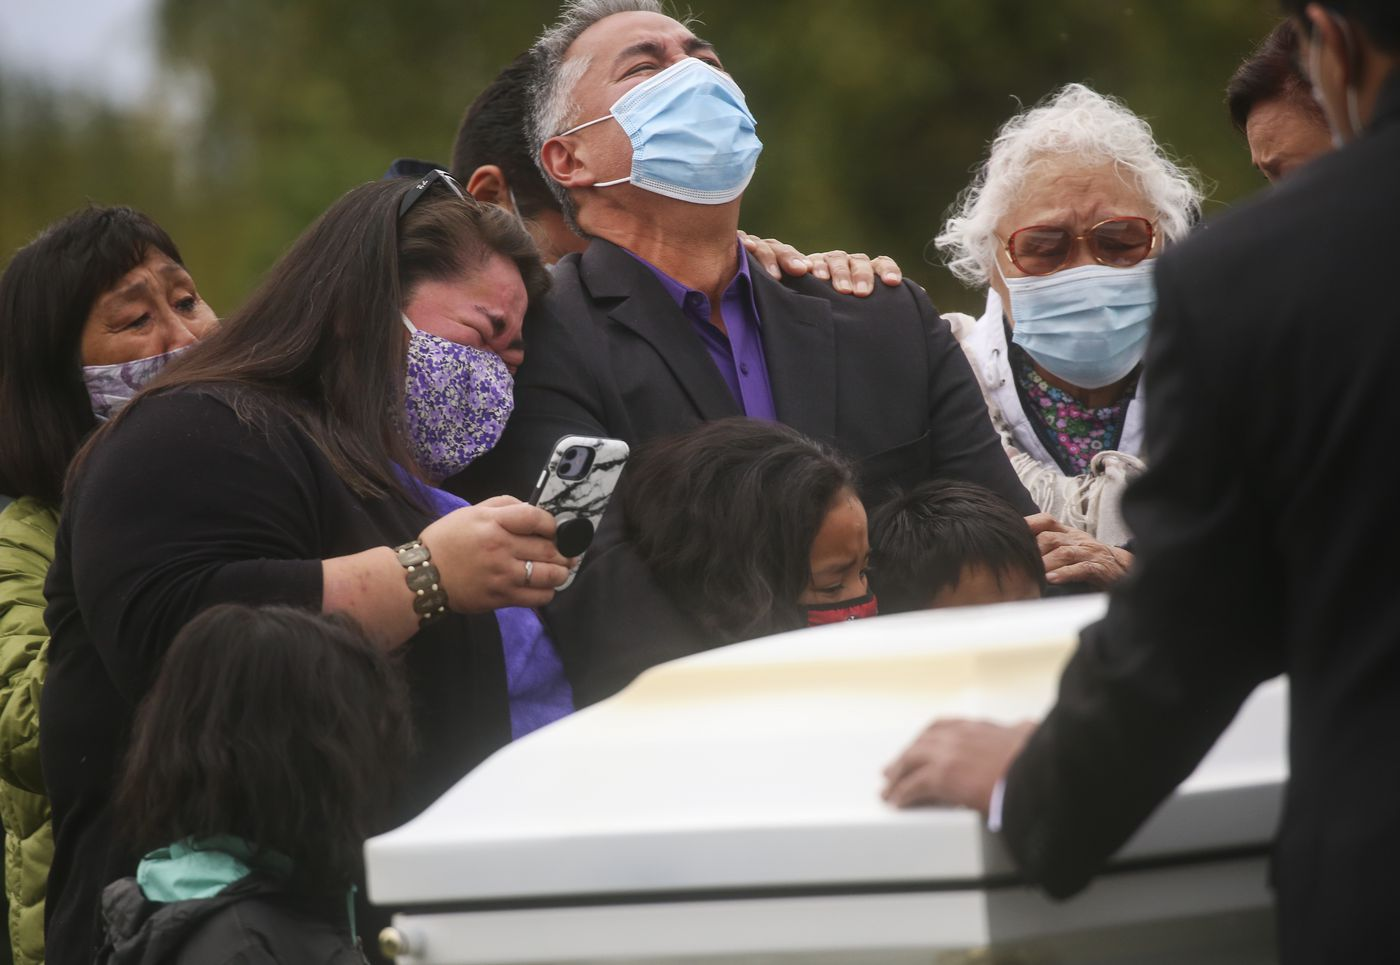 Clarissa Coffin, left, leans on Scott Wells, center, as he comforts his children next to Amanda Bouffioux's casket before her burial at the Anchorage Memorial Park Cemetery. Coffin, who was FaceTiming their mother, is Bouffioux's sister and Wells was Bouffioux's partner. (Emily Mesner / ADN)